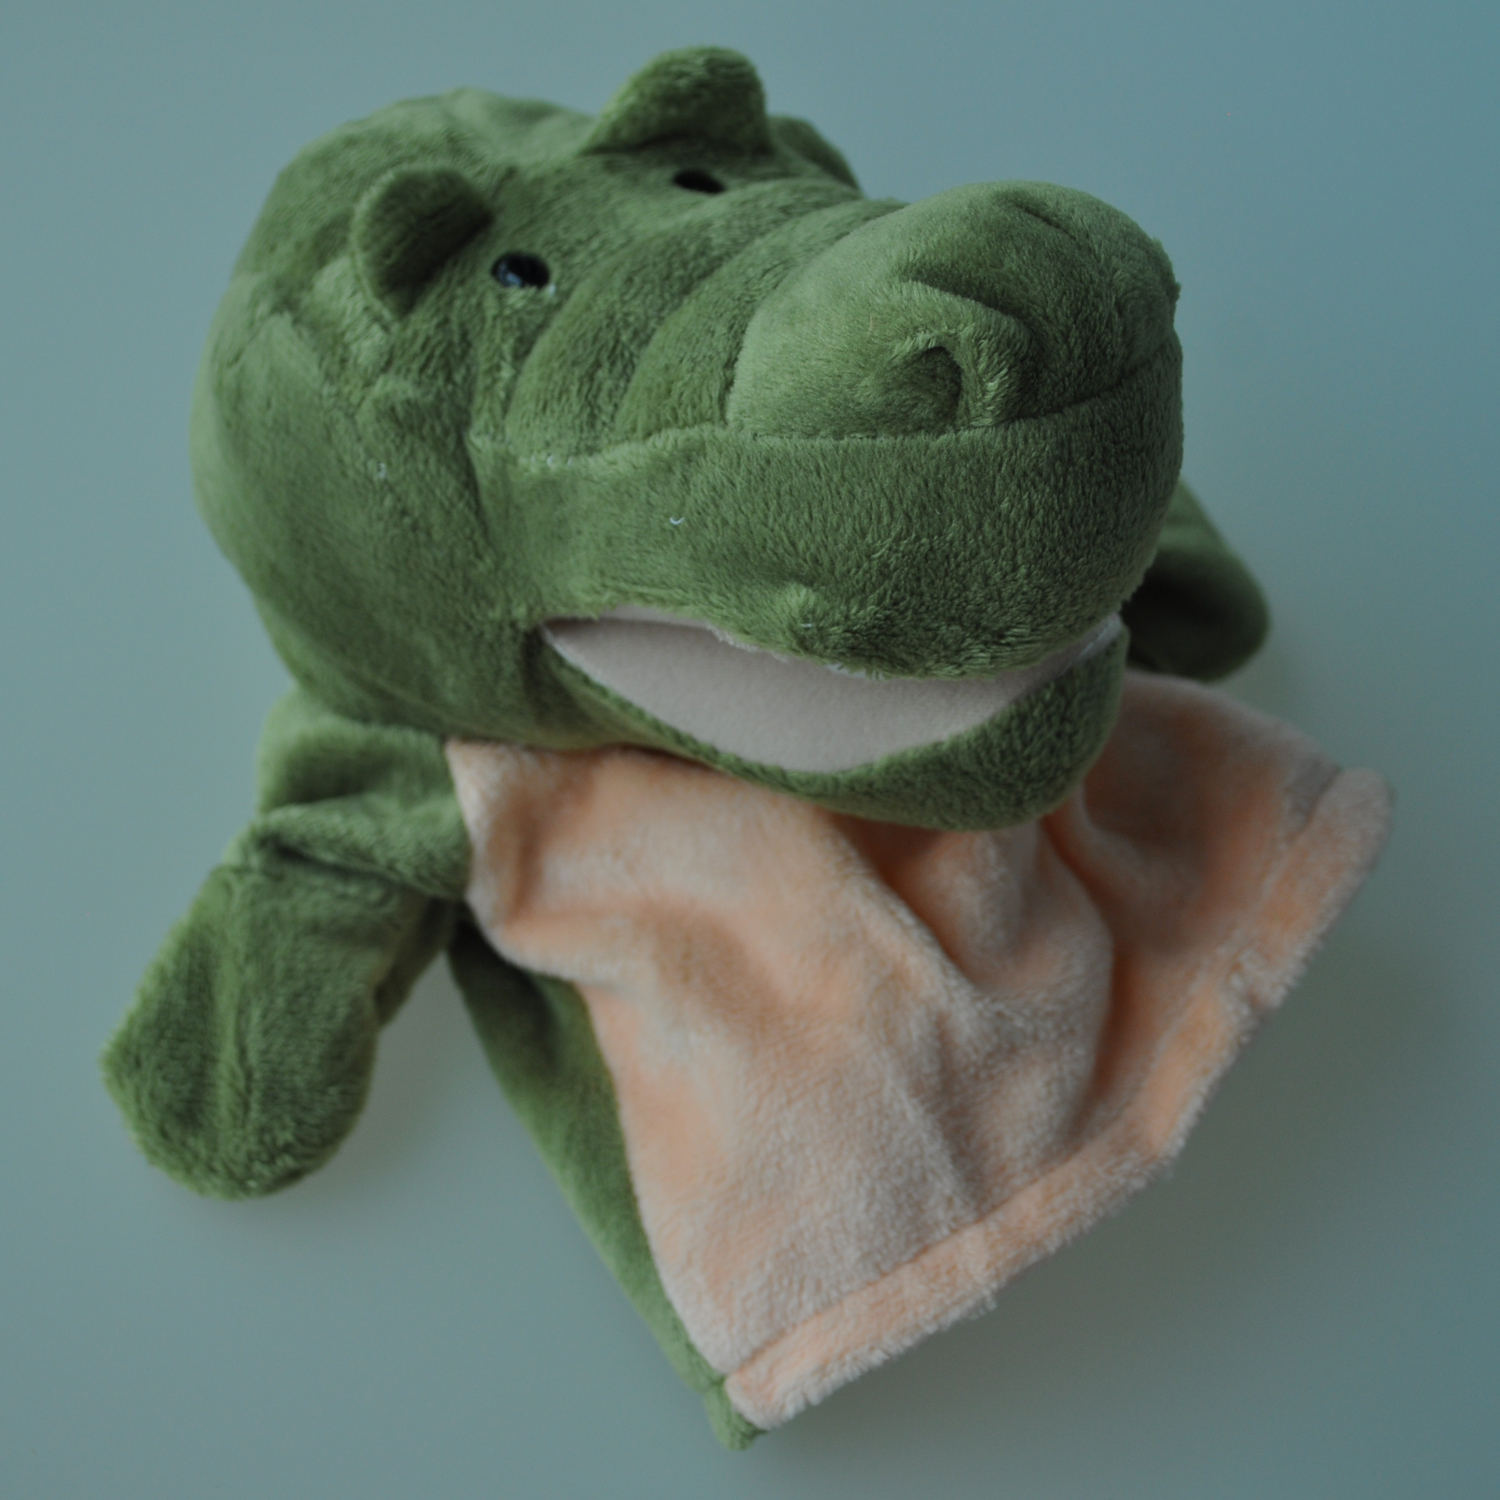 Hand Puppets MACH Animals Plush Crocodile Cute Child Kid Learning-Aid-Toy Velour Chic